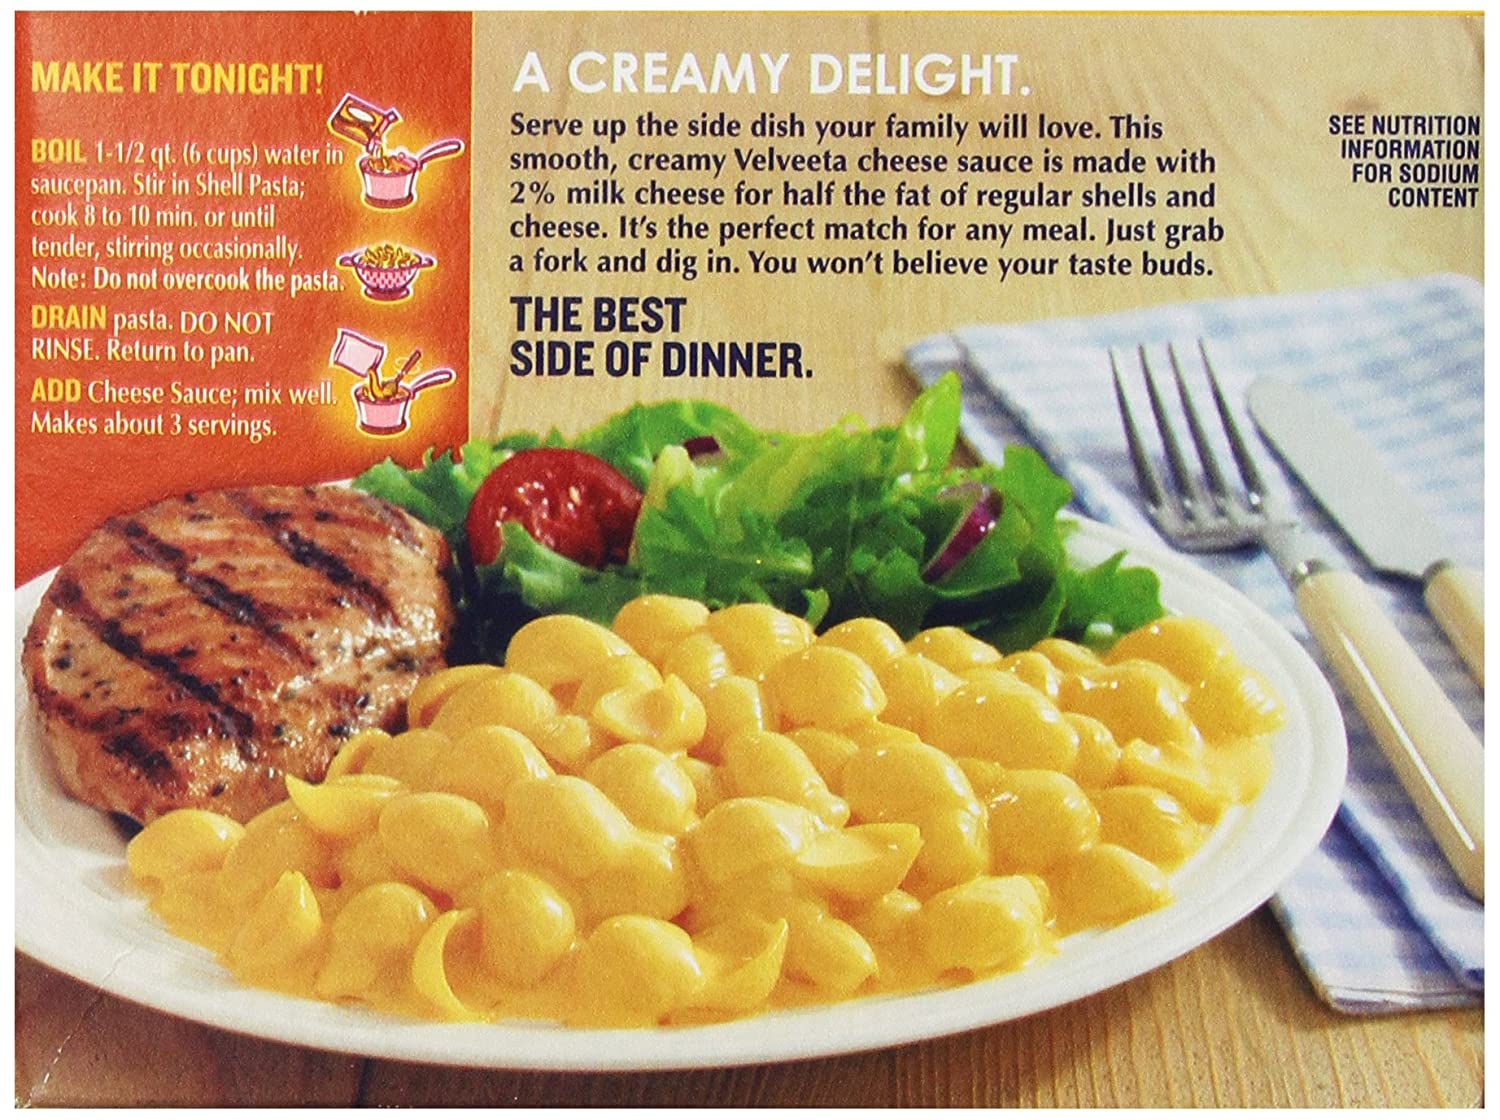 Amazon Com Velveeta Shells And Cheese With 2 Percent Milk 12 Ounces Pack Of 6 Packaged Macaroni And Cheese Grocery Gourmet Food